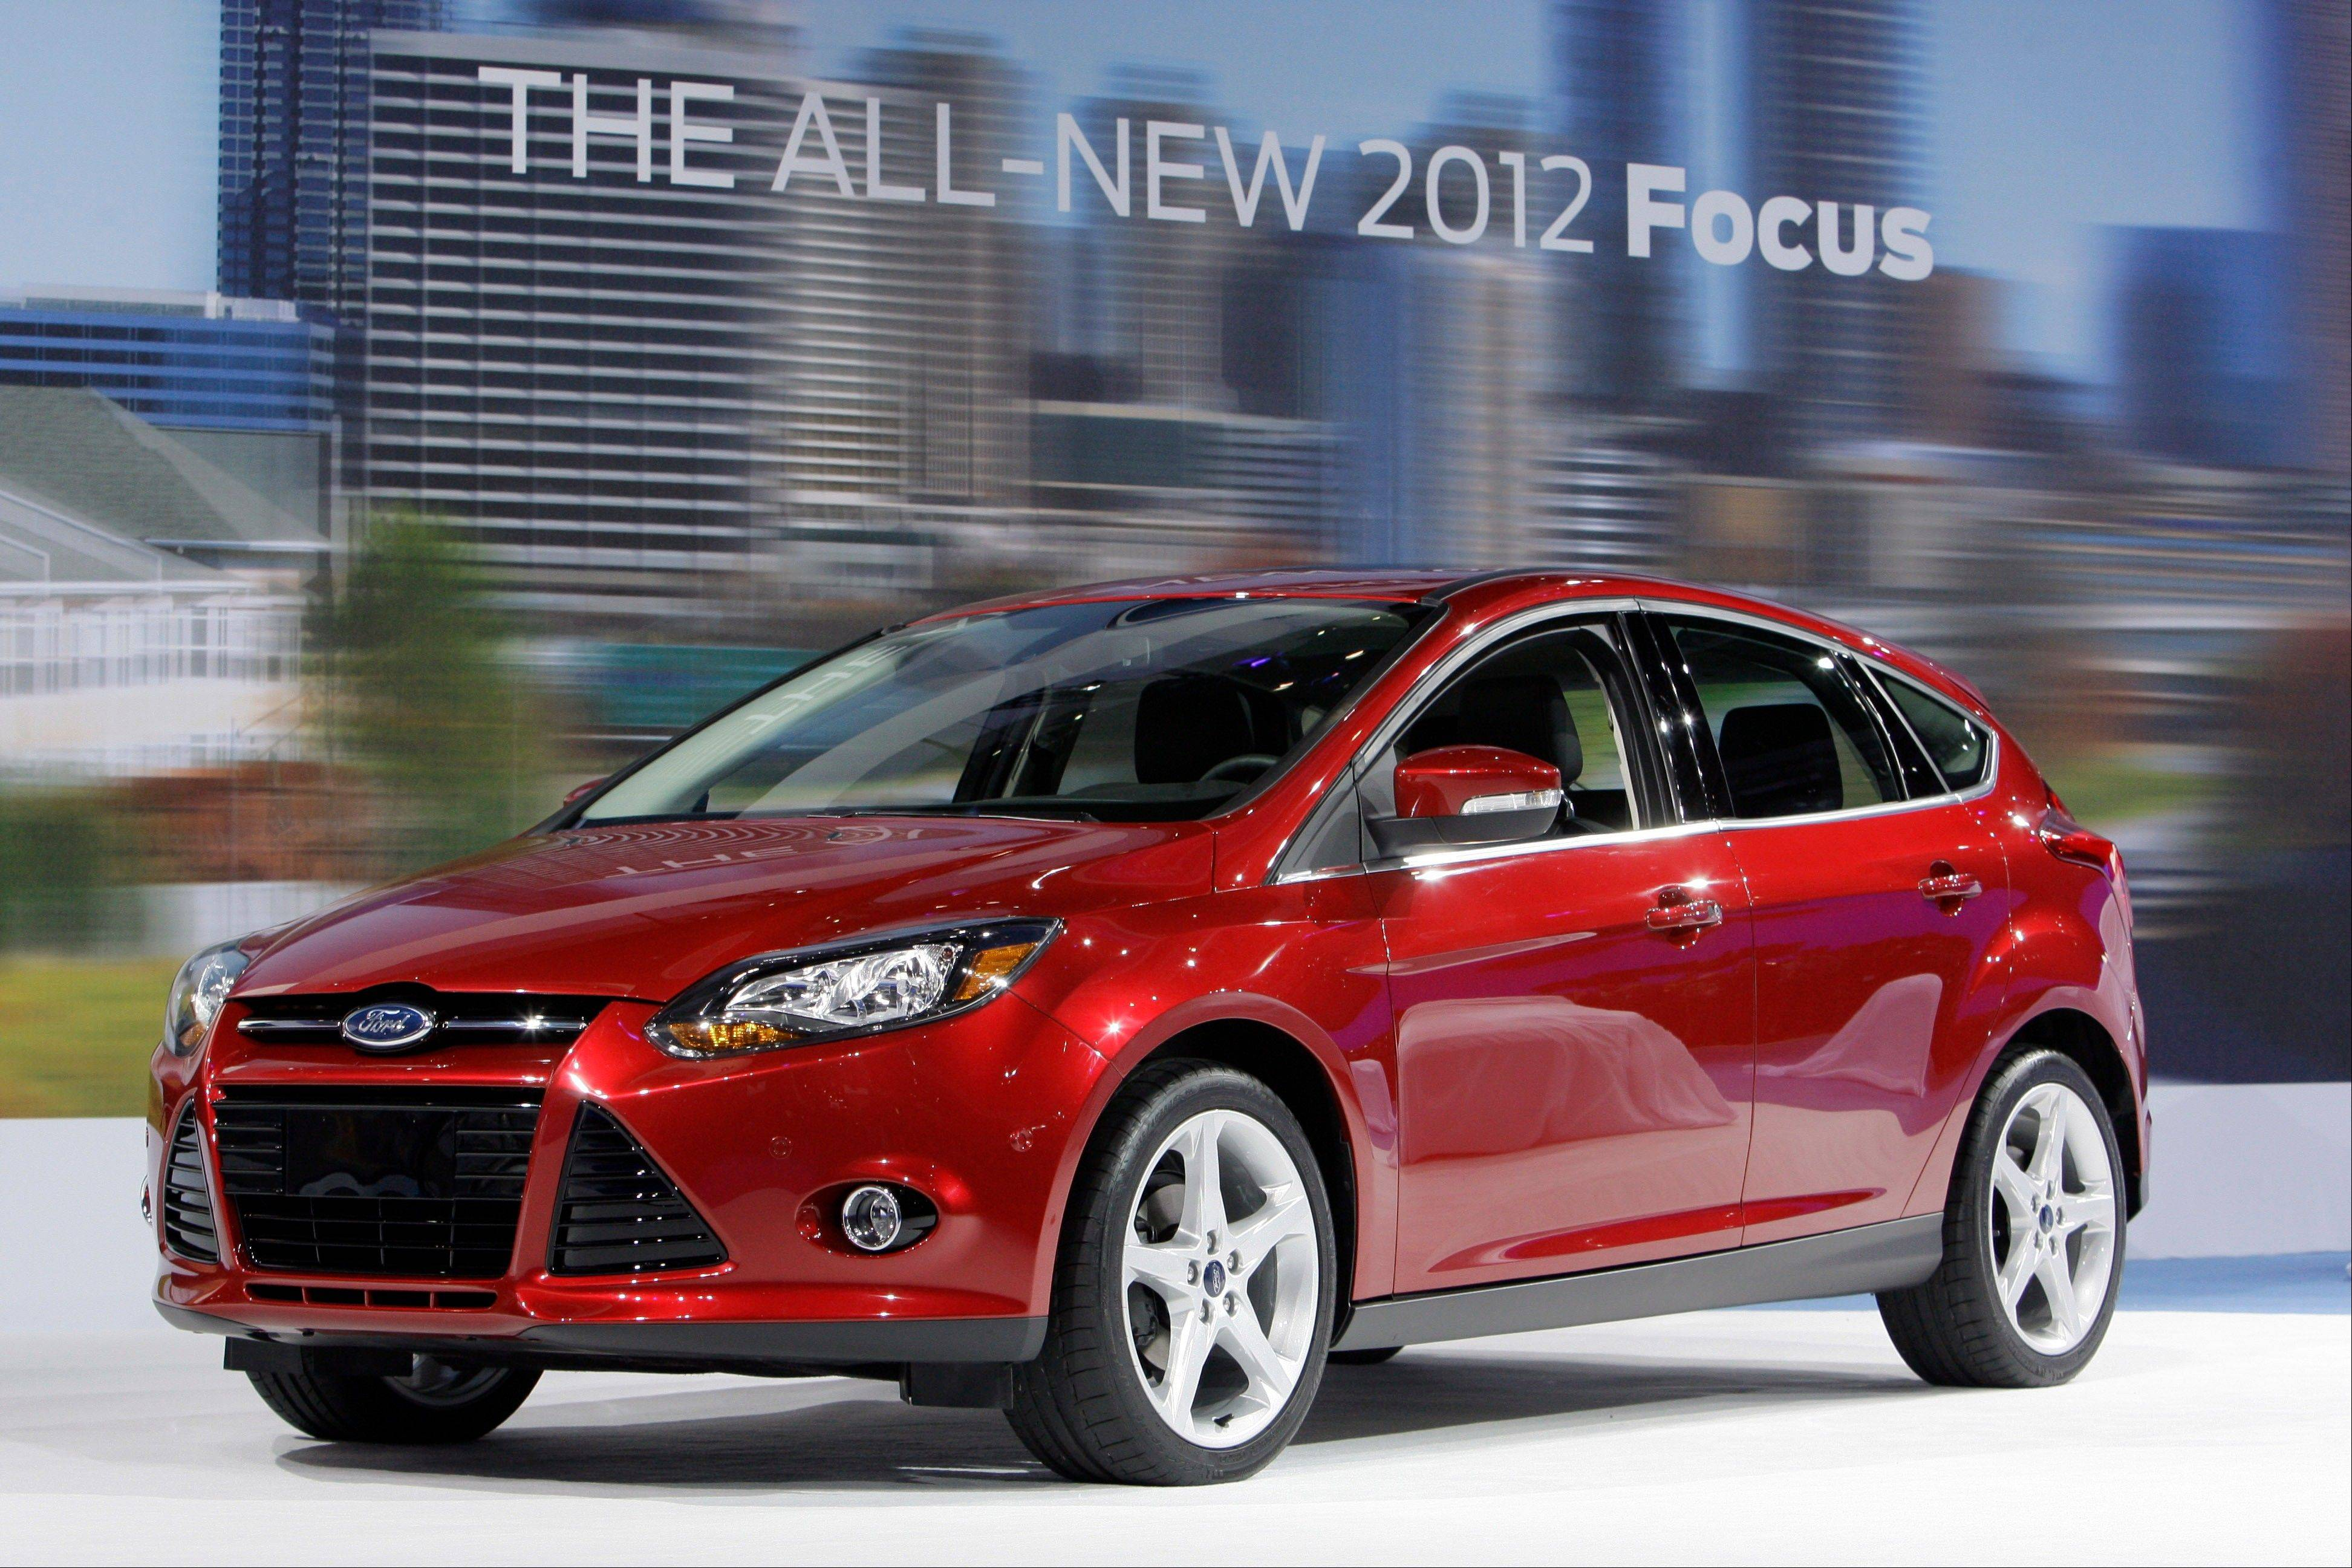 Ford Motor Co. said Friday Aug. 31, 2012 its Focus small car is on track to become the best-selling car in the world this year, trumping the Toyota Corolla.